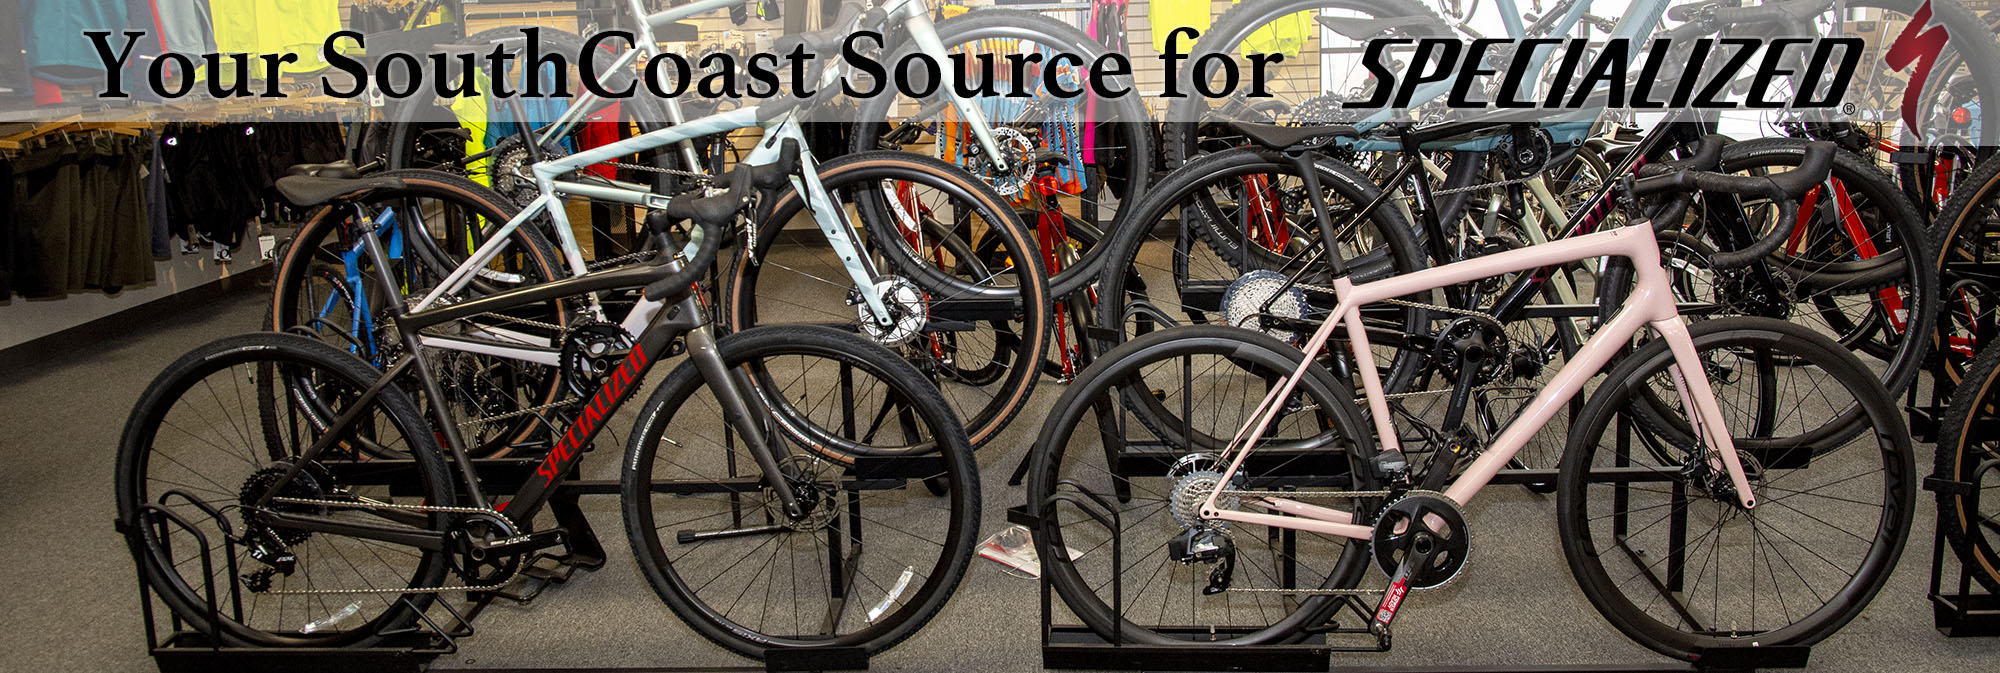 Your SouthCoast Specialized Source